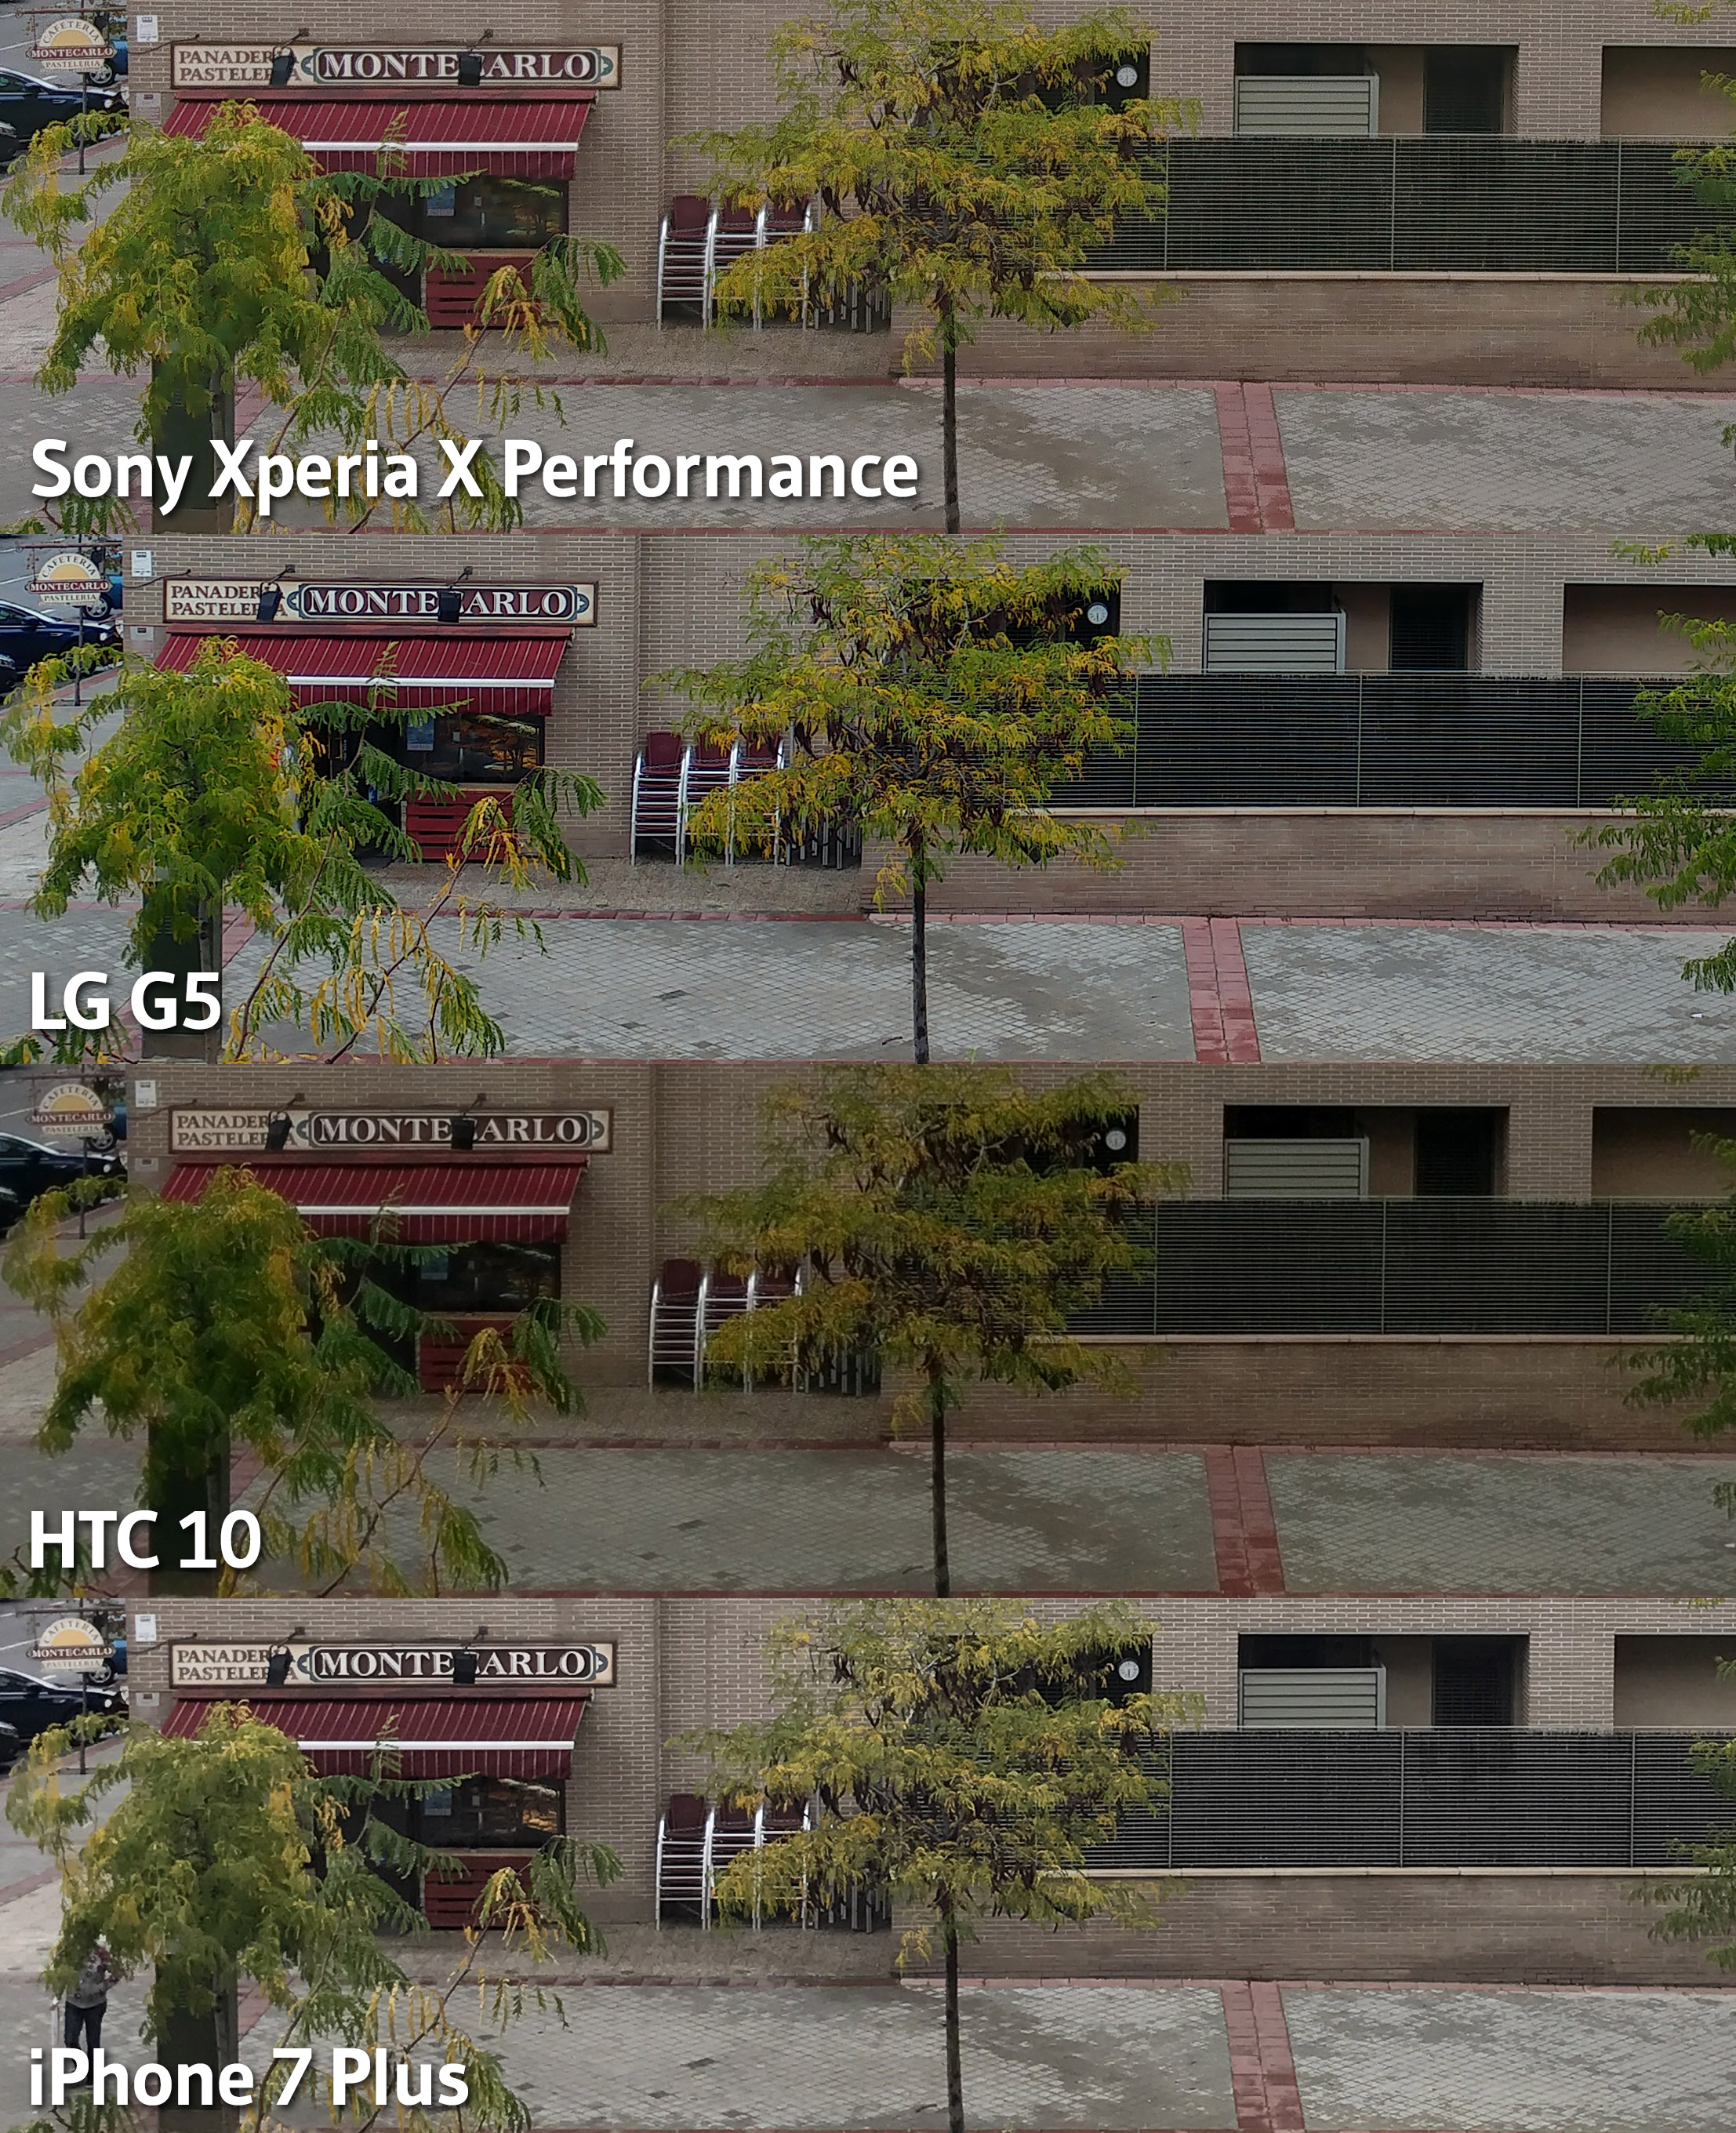 comparativa-sony-xperia-x-performance-lg-g5-htc-10-iphone-7-plus-teknofilo